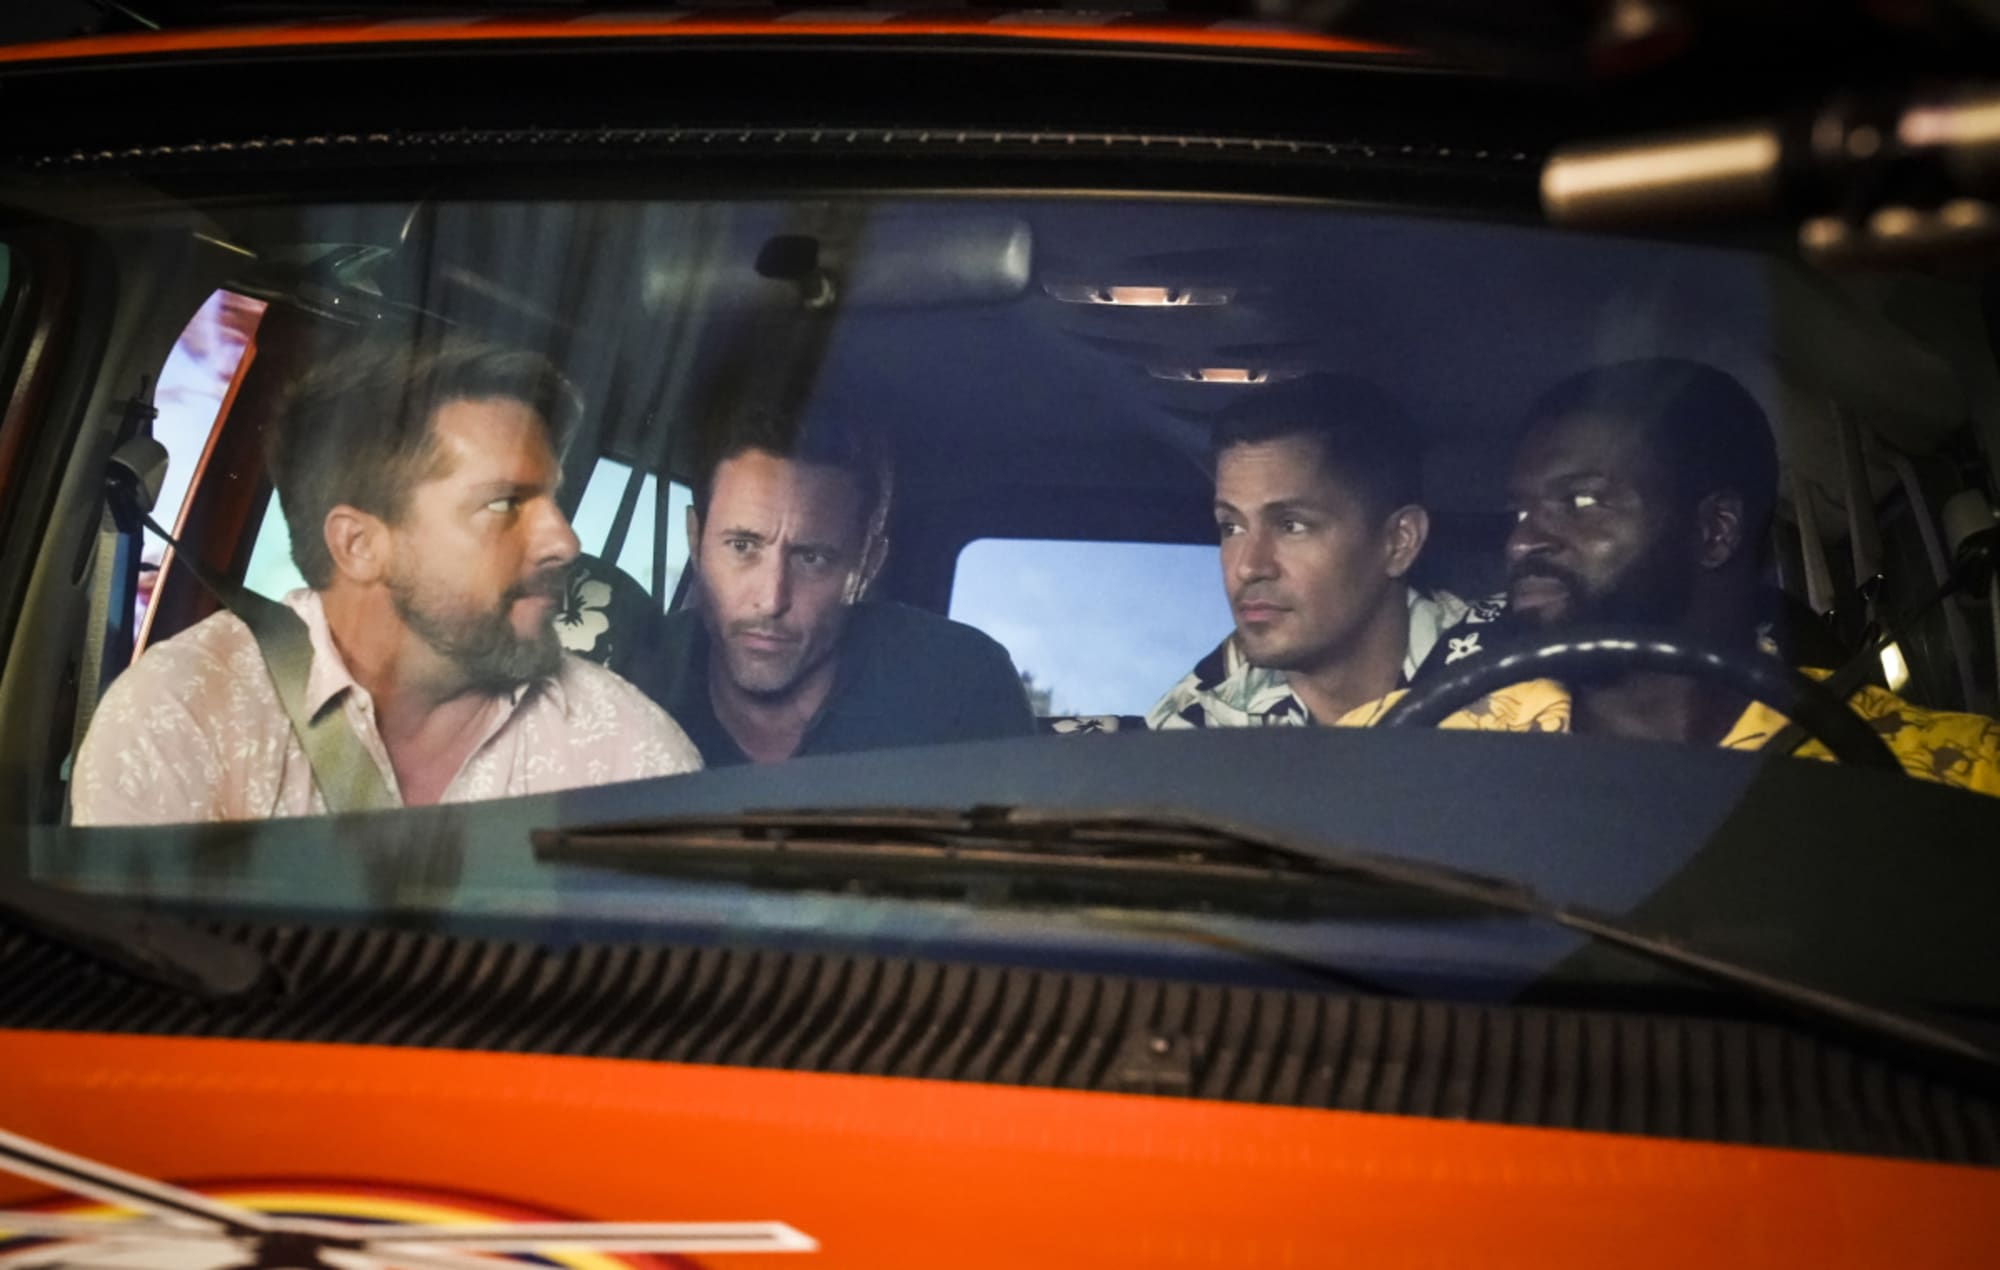 Hawaii Five-0 complete series coming to DVD in December